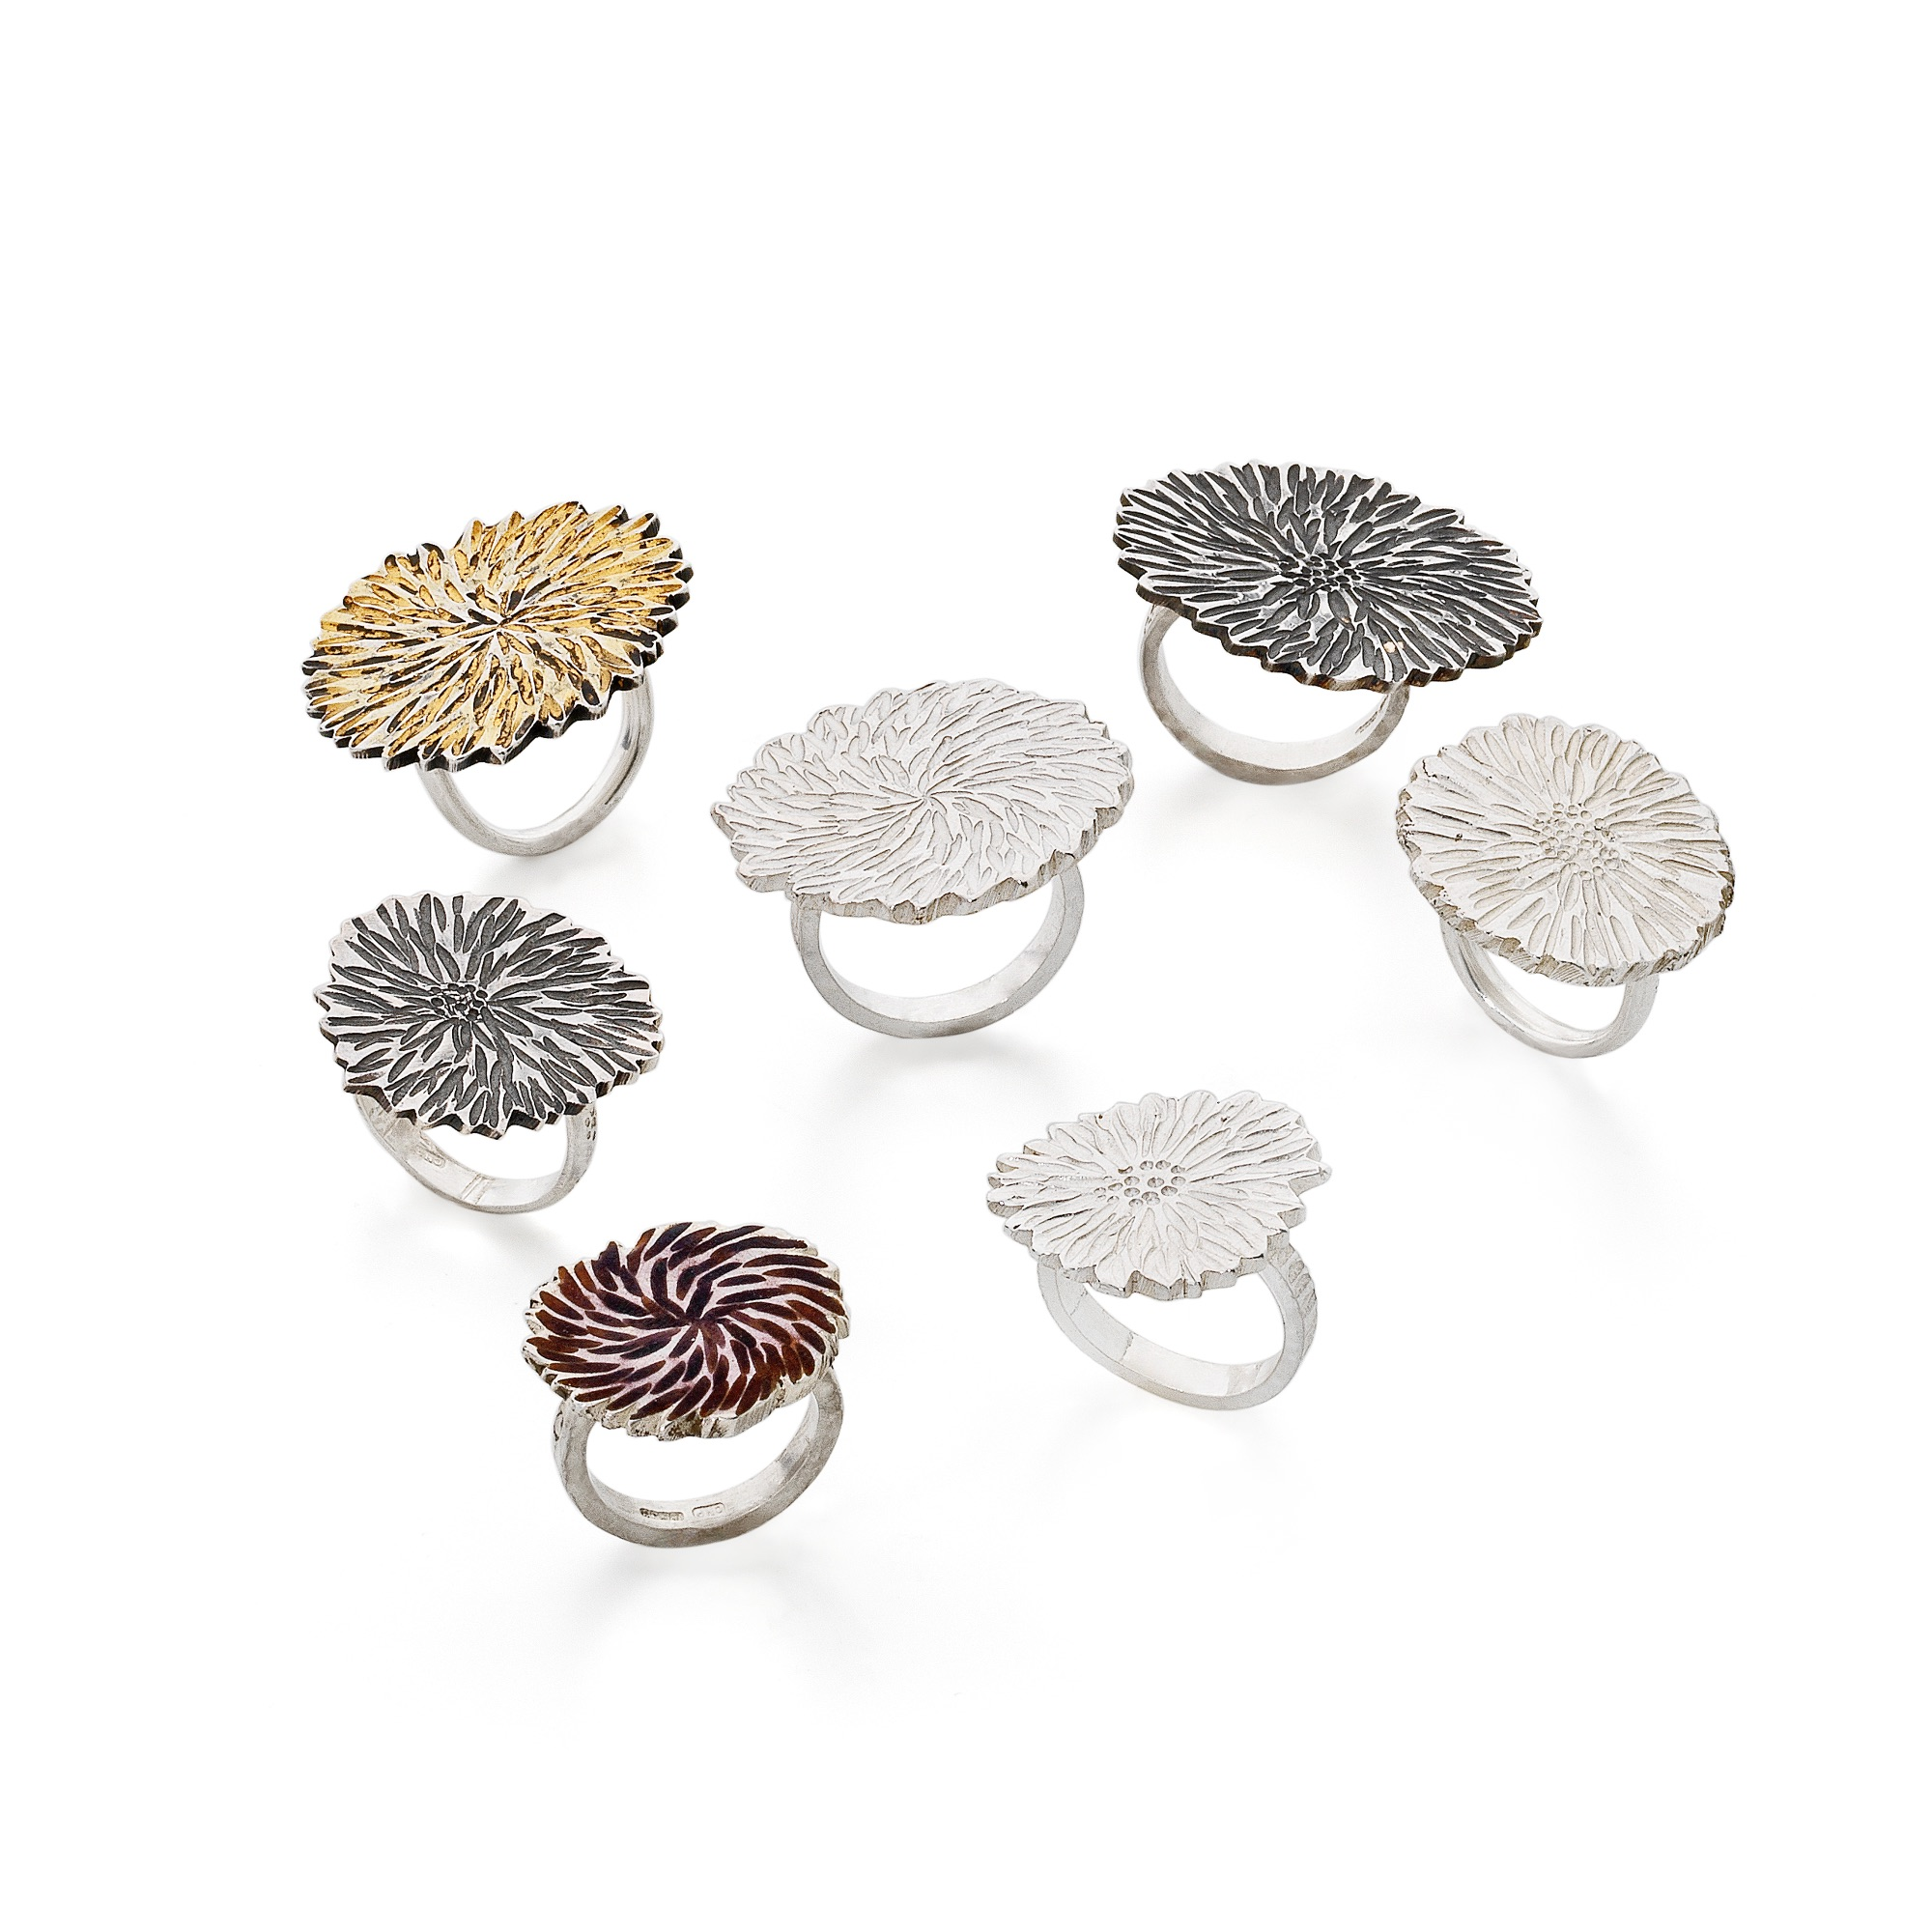 Cathy-Newell-price-statement-rings